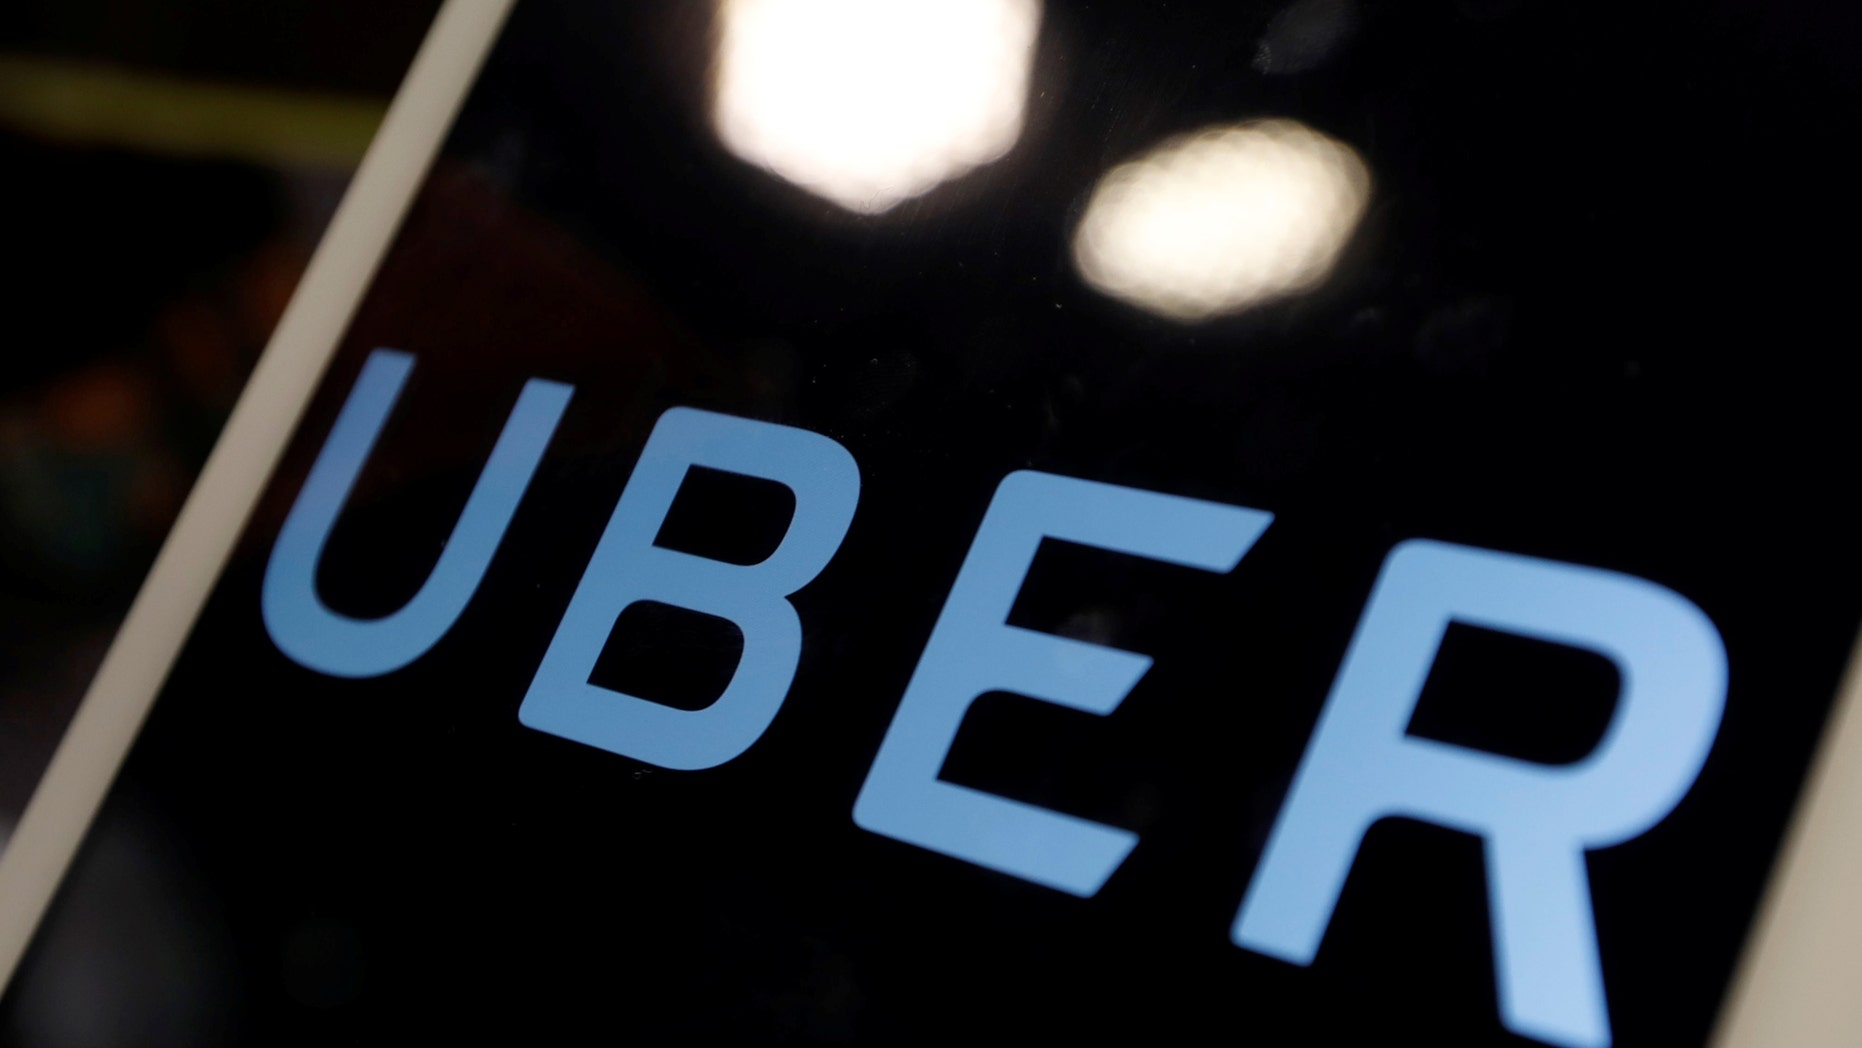 File photo: The logo of Uber is seen on an iPad, during a news conference to announce Uber resumes ride-hailing service, in Taipei, Taiwan April 13, 2017. (REUTERS/Tyrone Siu)